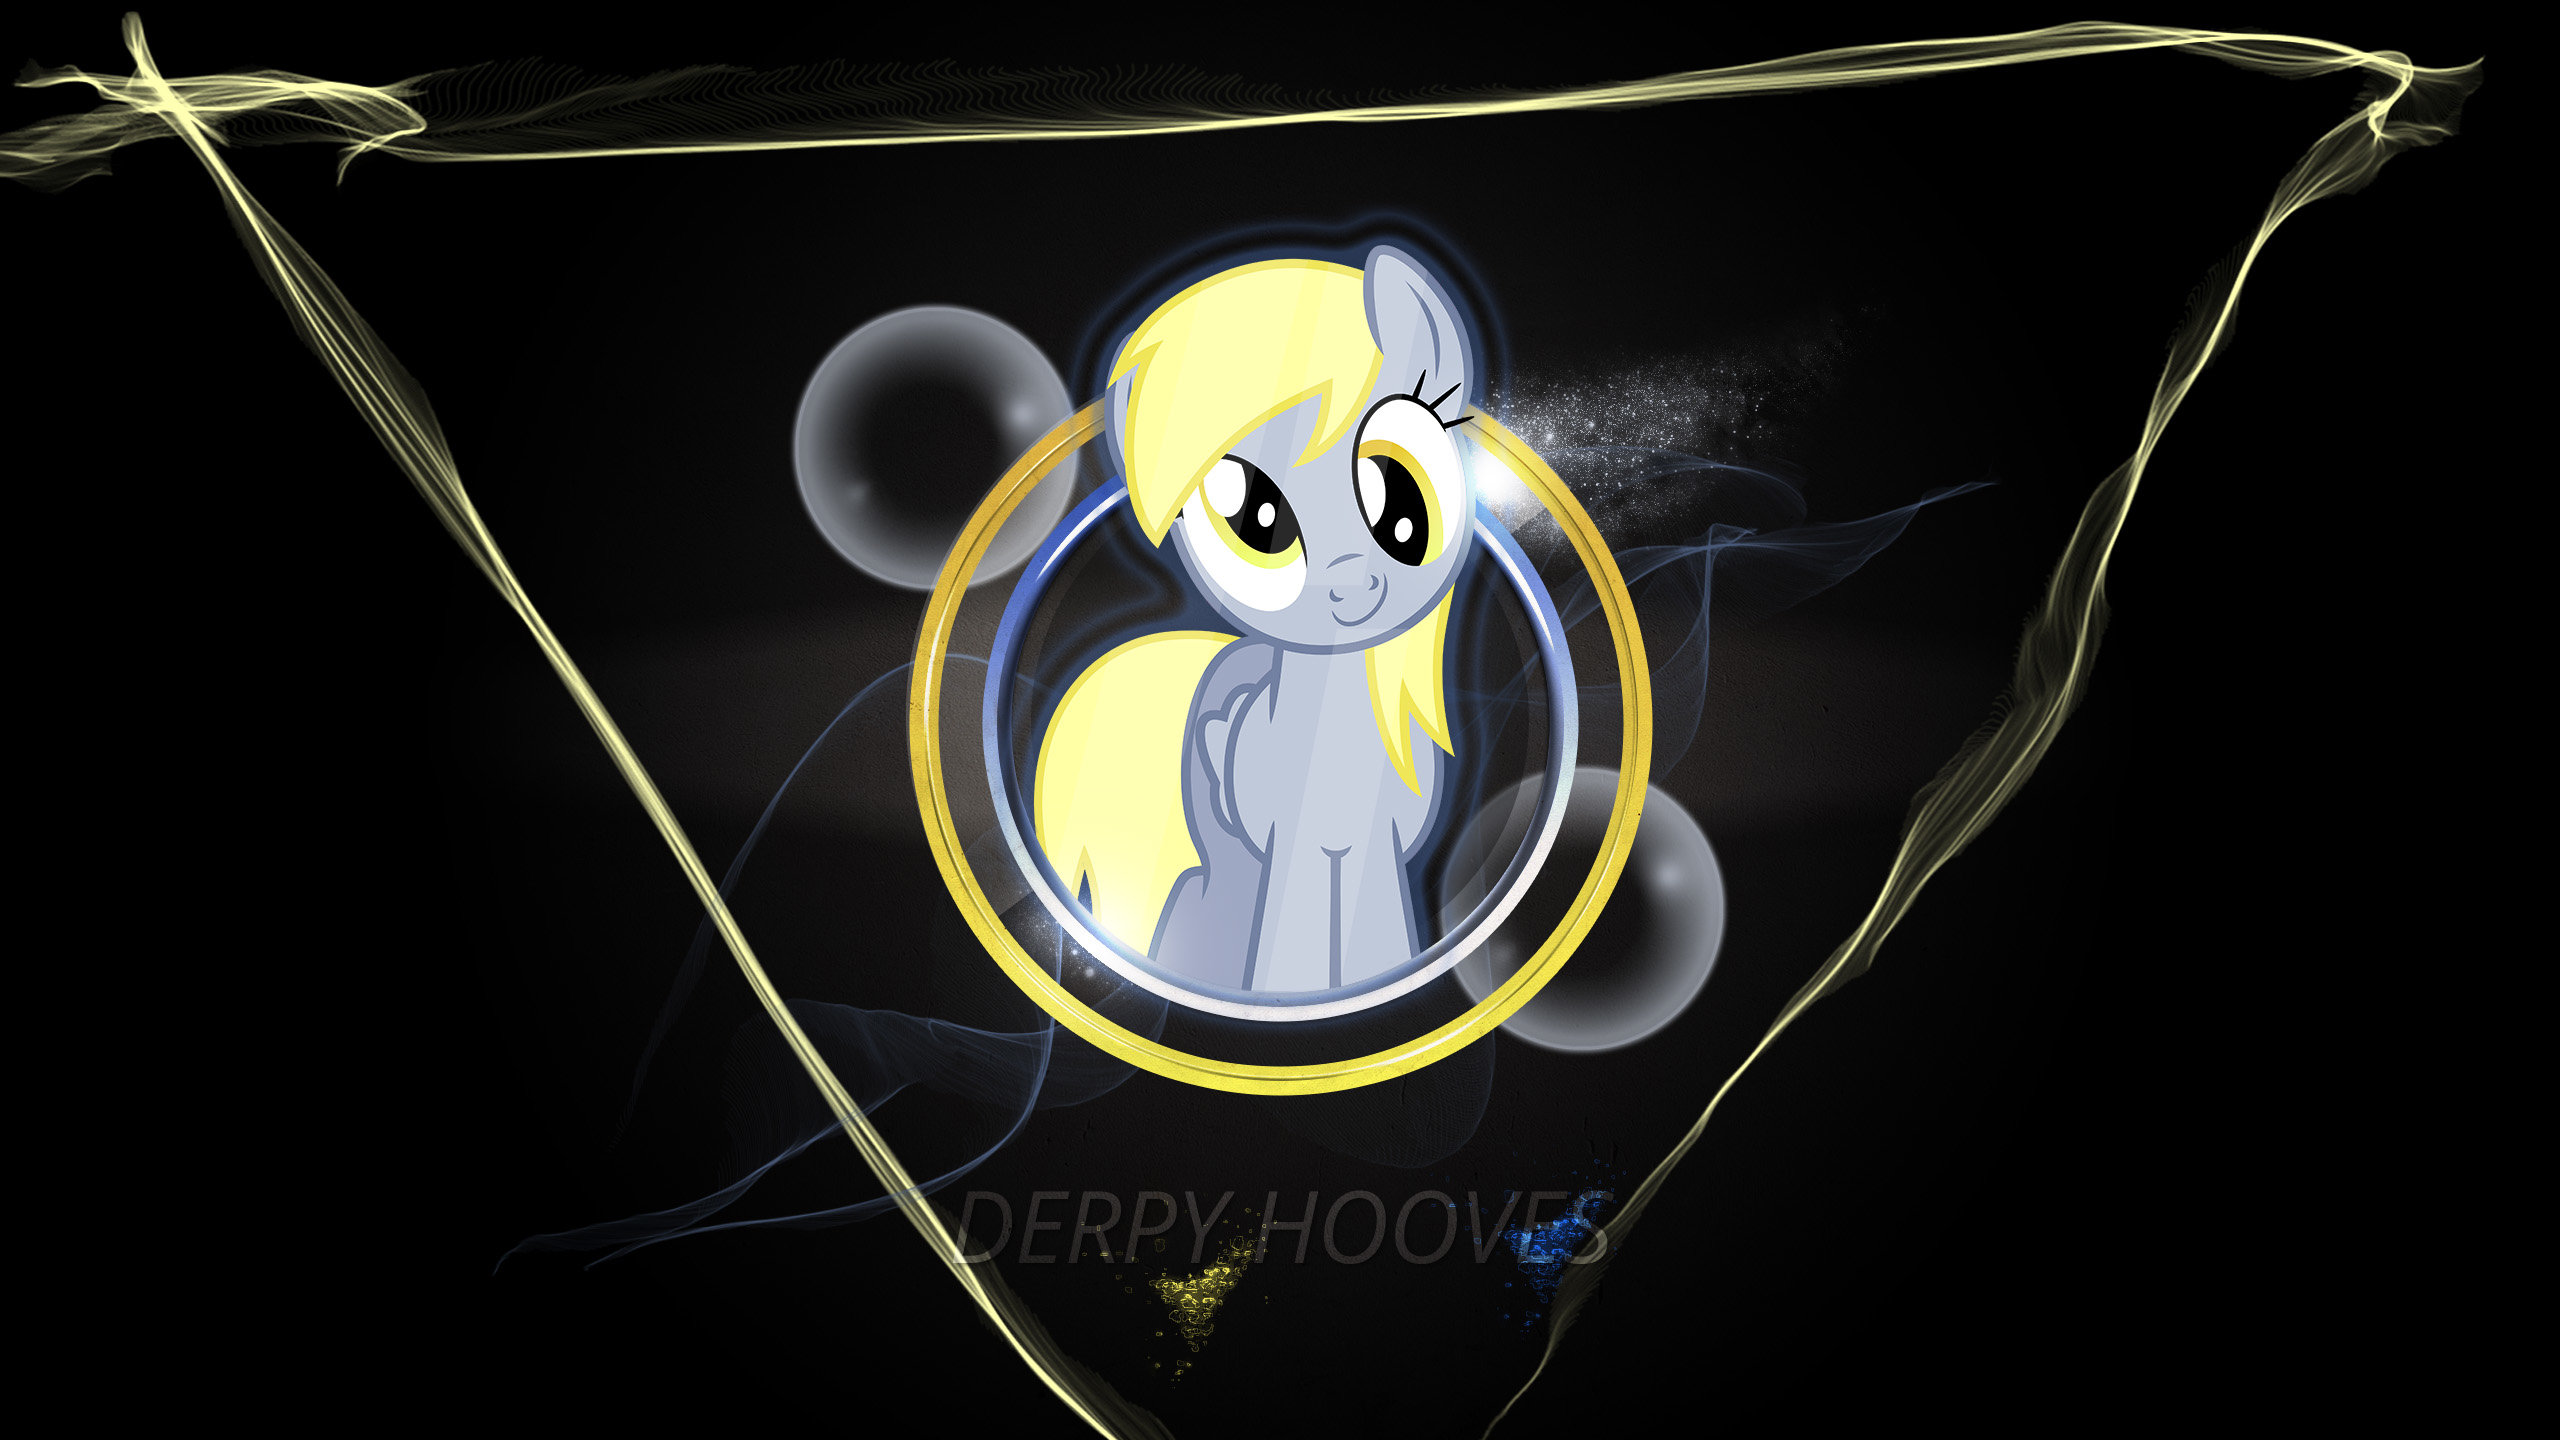 Free Download Derpy Hooves Background ID154747 Hd 2560x1440 For Computer